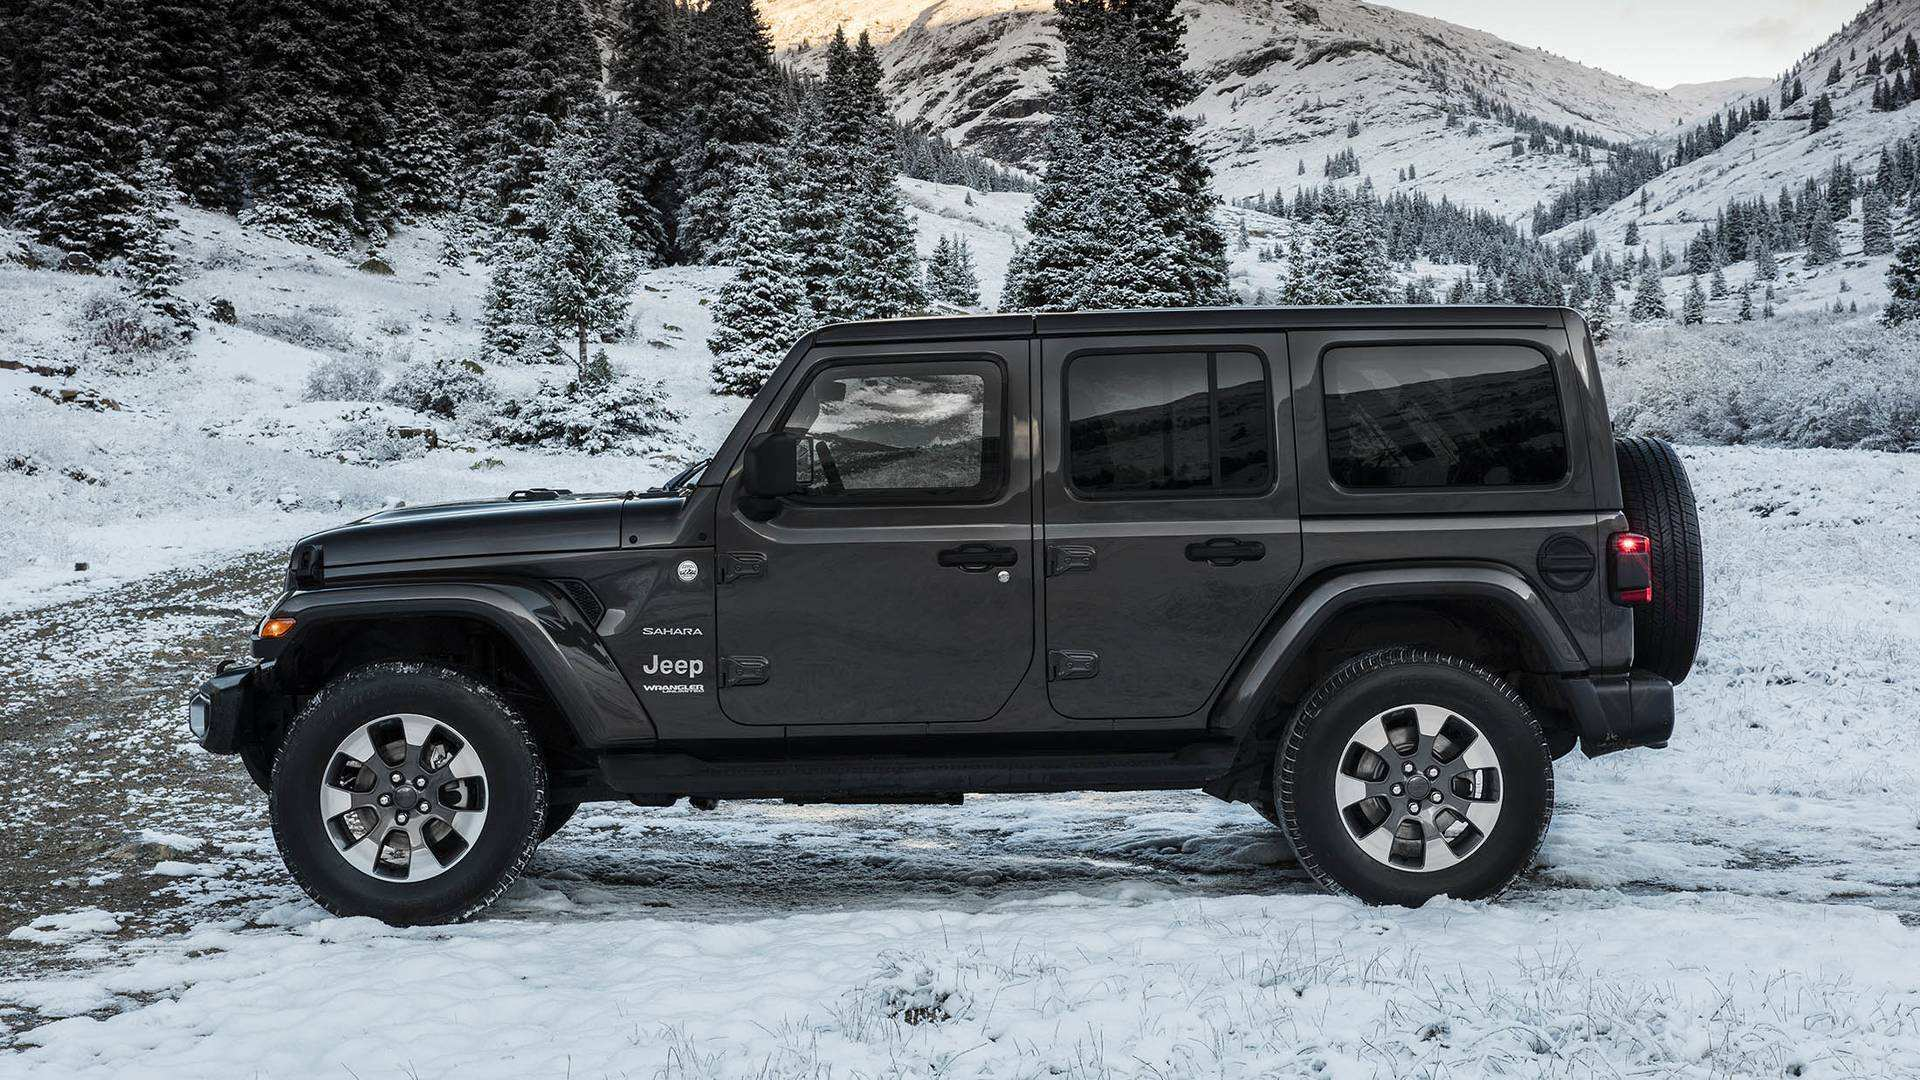 76 Gallery of When Will 2020 Jeep Wrangler Be Available Performance and New Engine by When Will 2020 Jeep Wrangler Be Available